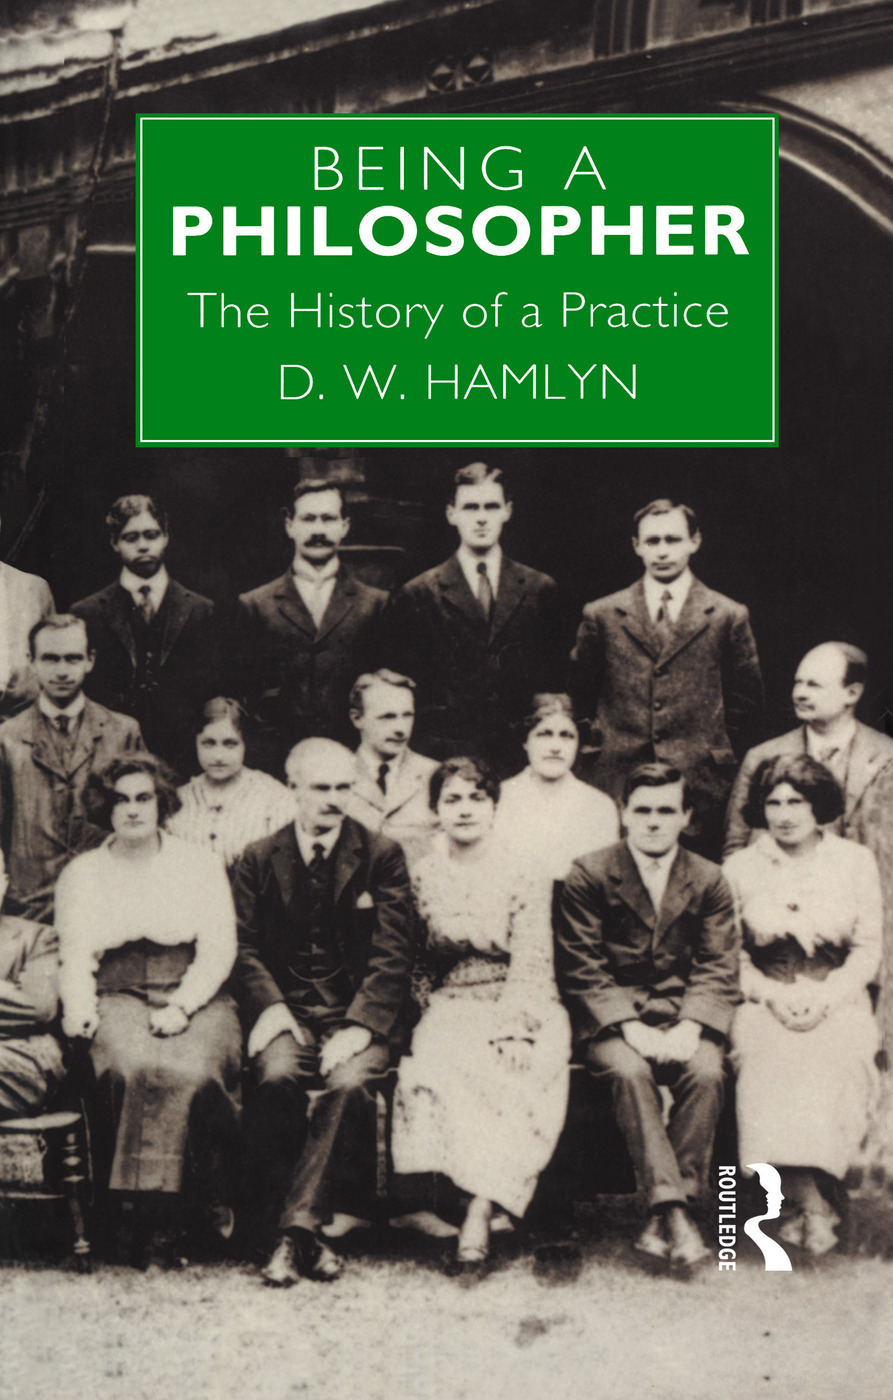 Being a Philosopher: The History of a Practice book cover